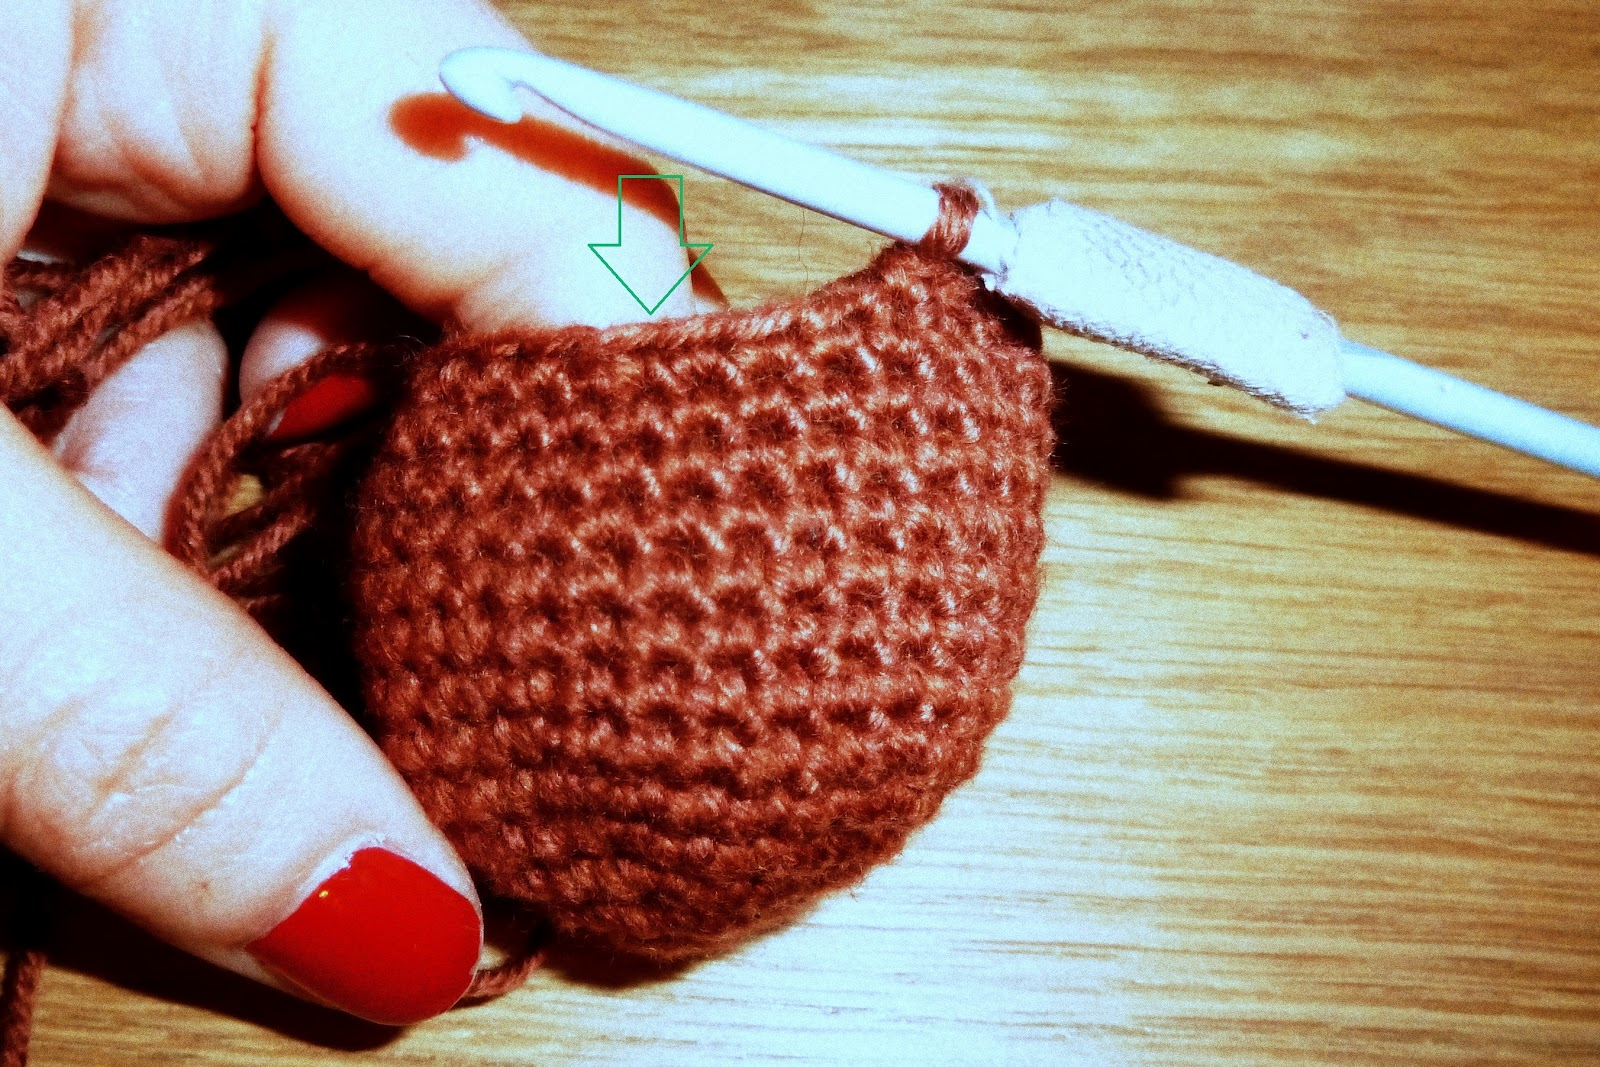 ... Mama Sanchez busy...: Crochet - working doubles in continuous rounds